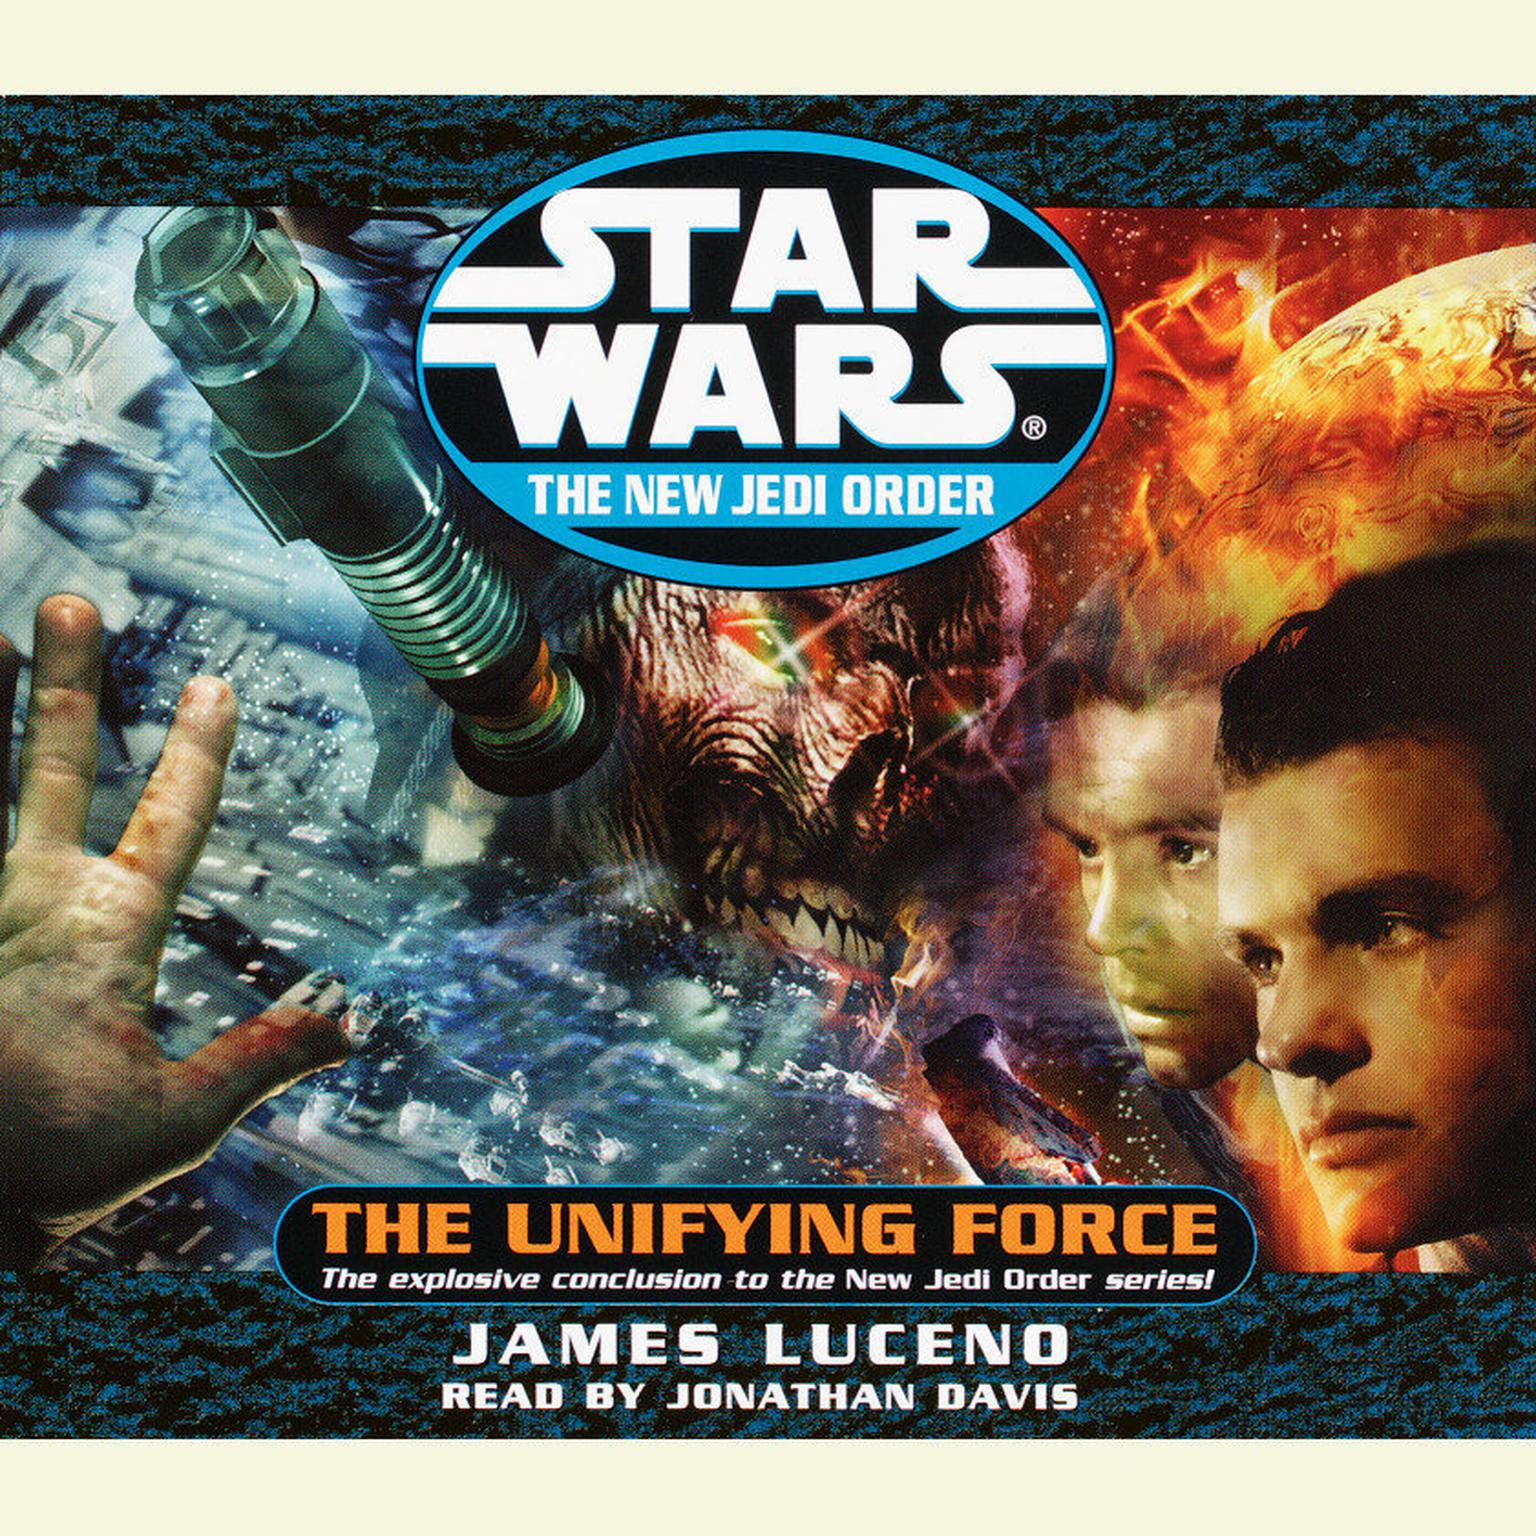 Star Wars: The New Jedi Order: The Unifying Force (Abridged) Audiobook, by James Luceno